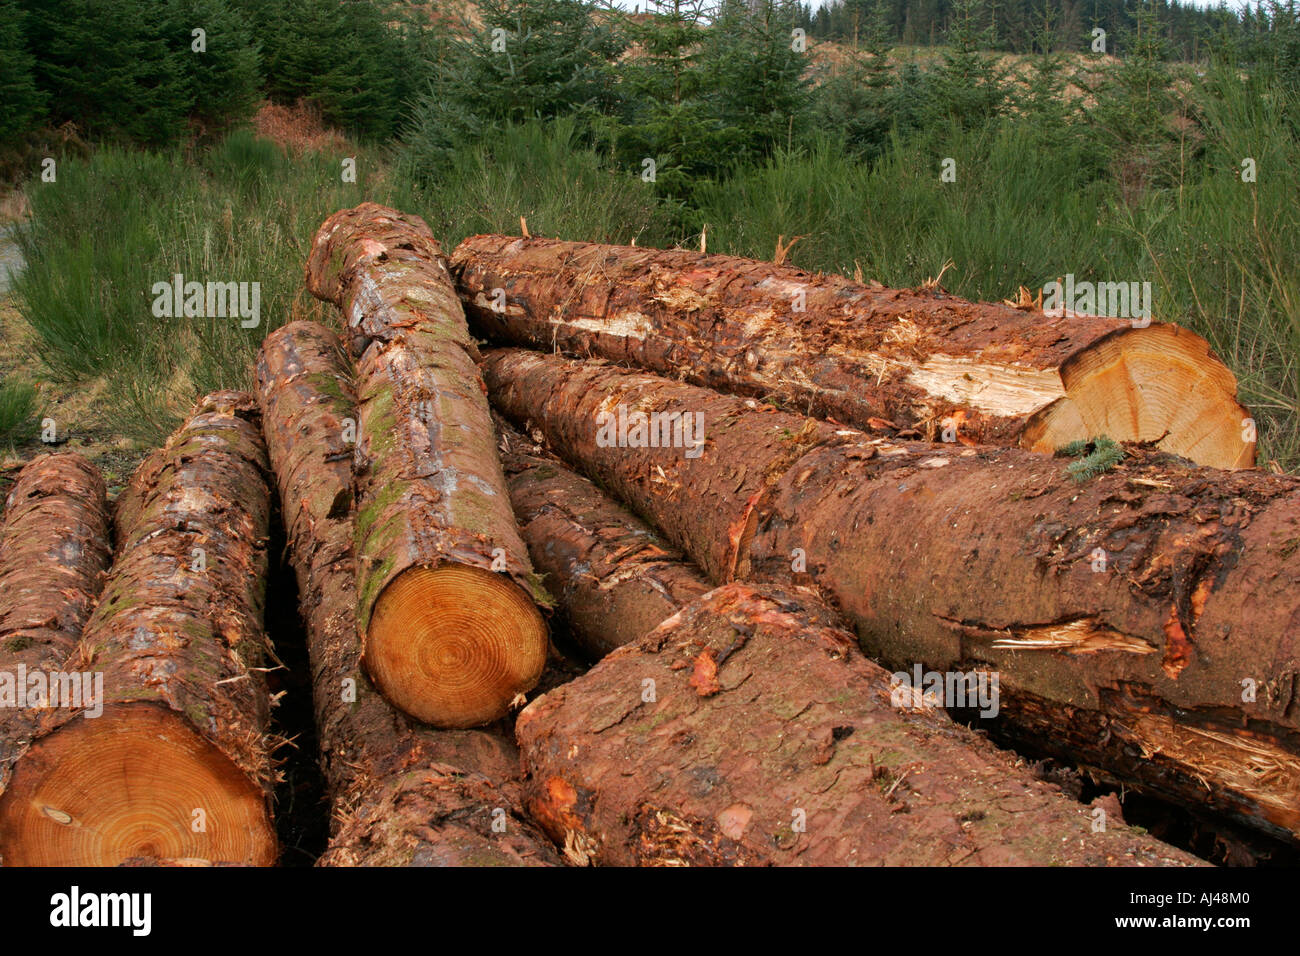 Cut timber logs with conifer trees in forest background